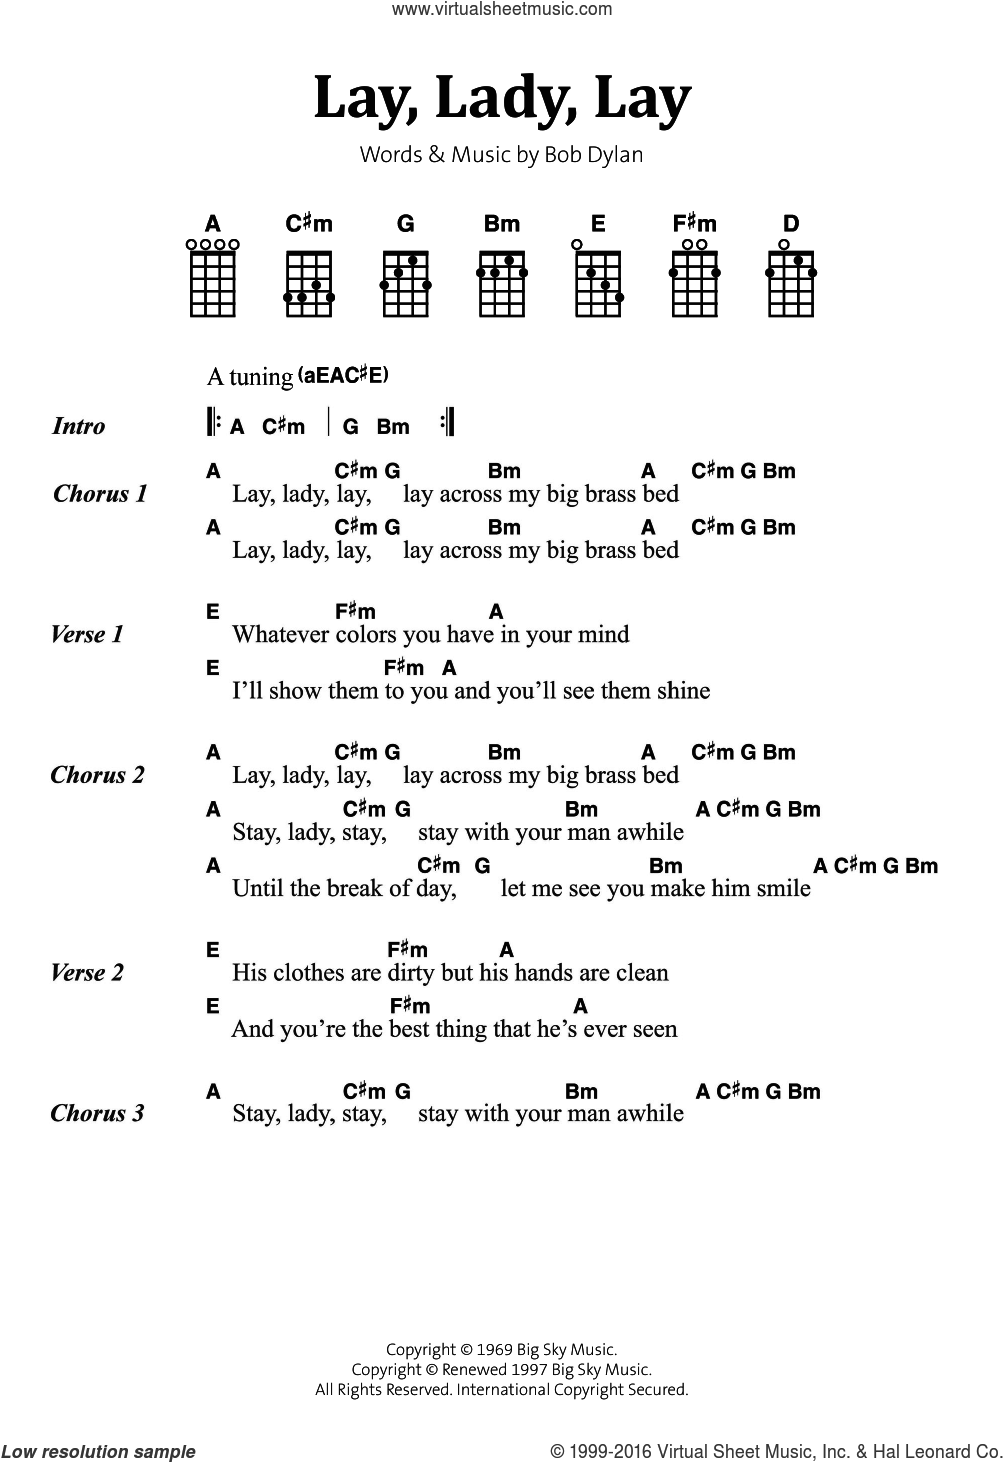 Lay, Lady, Lay sheet music for voice, piano or guitar by Bob Dylan